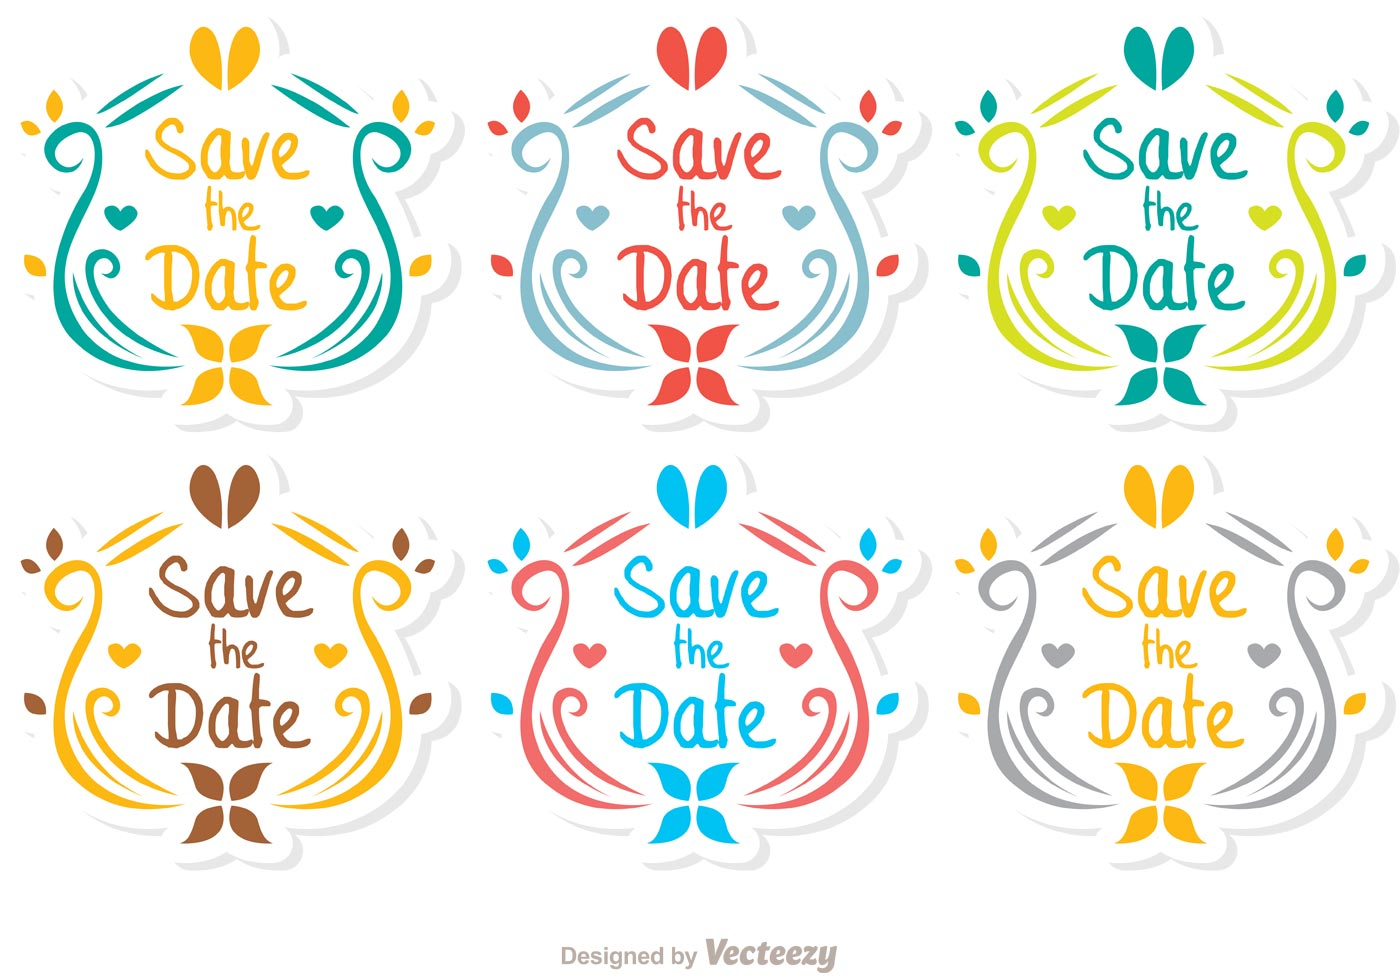 Ornamental save the date vector pack download free vector art stock graphics images for Save the date vector